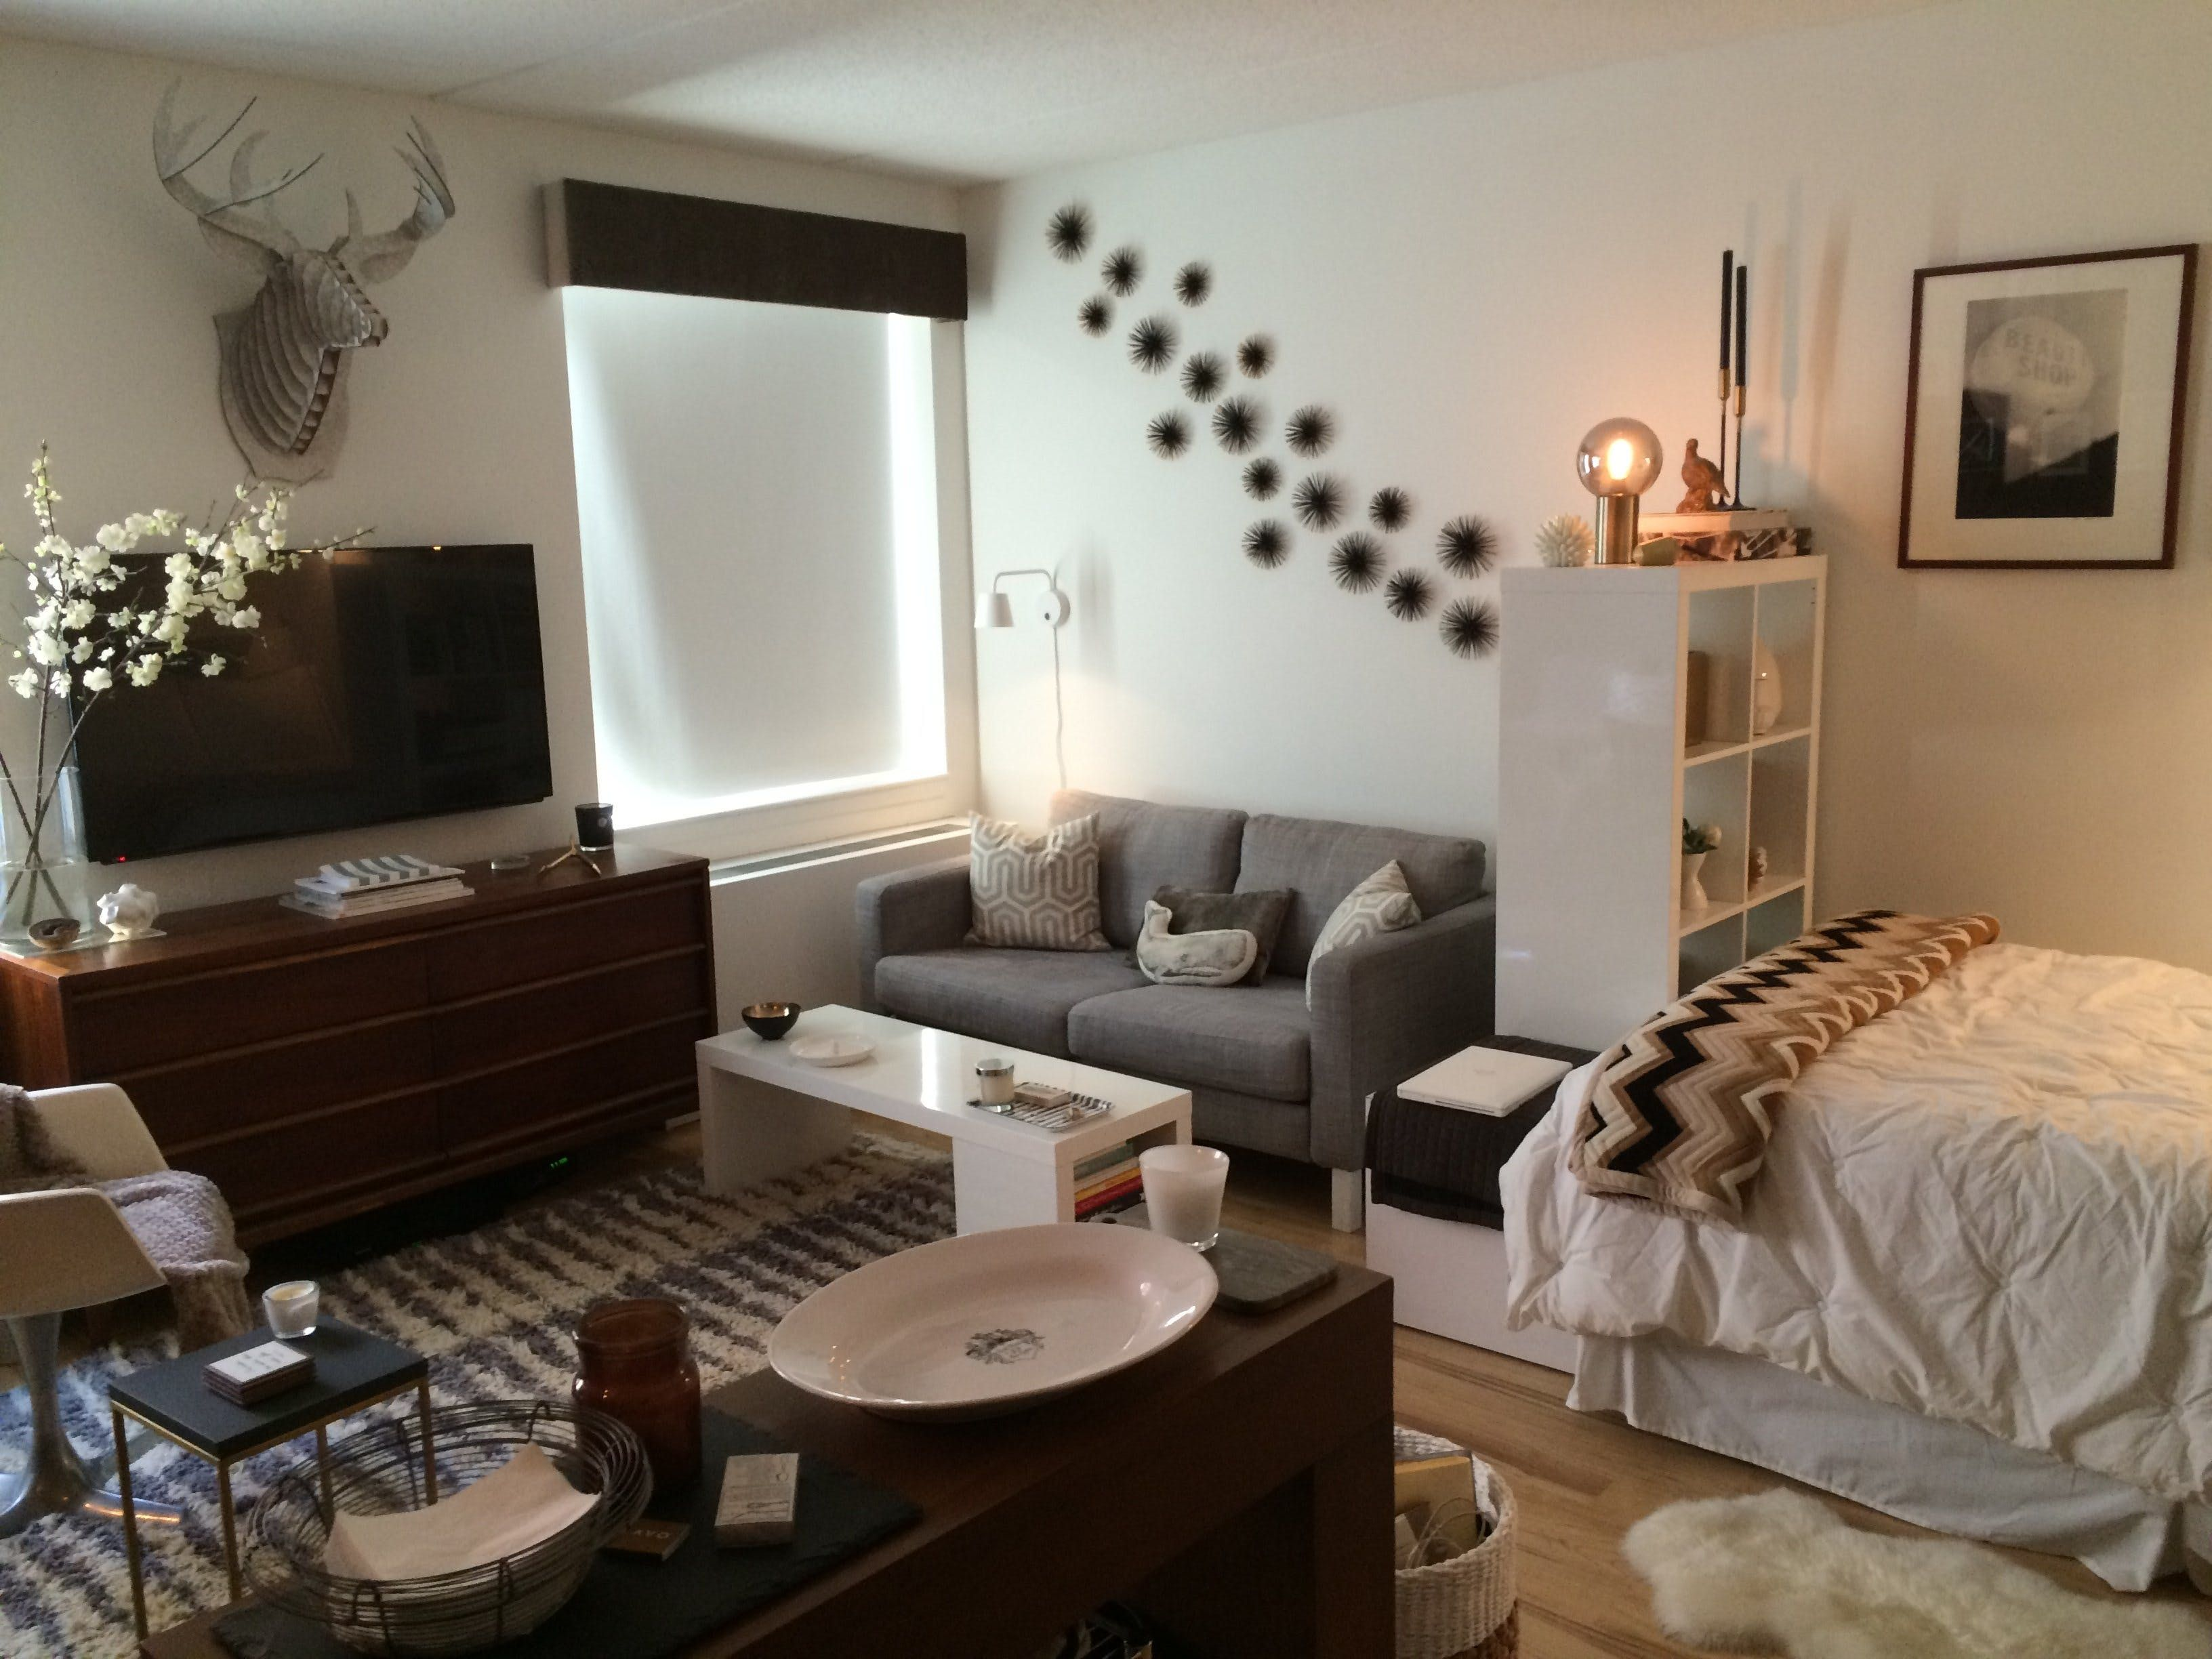 5 Studio Apartment Layouts to Try That Just Work | Pinterest ...